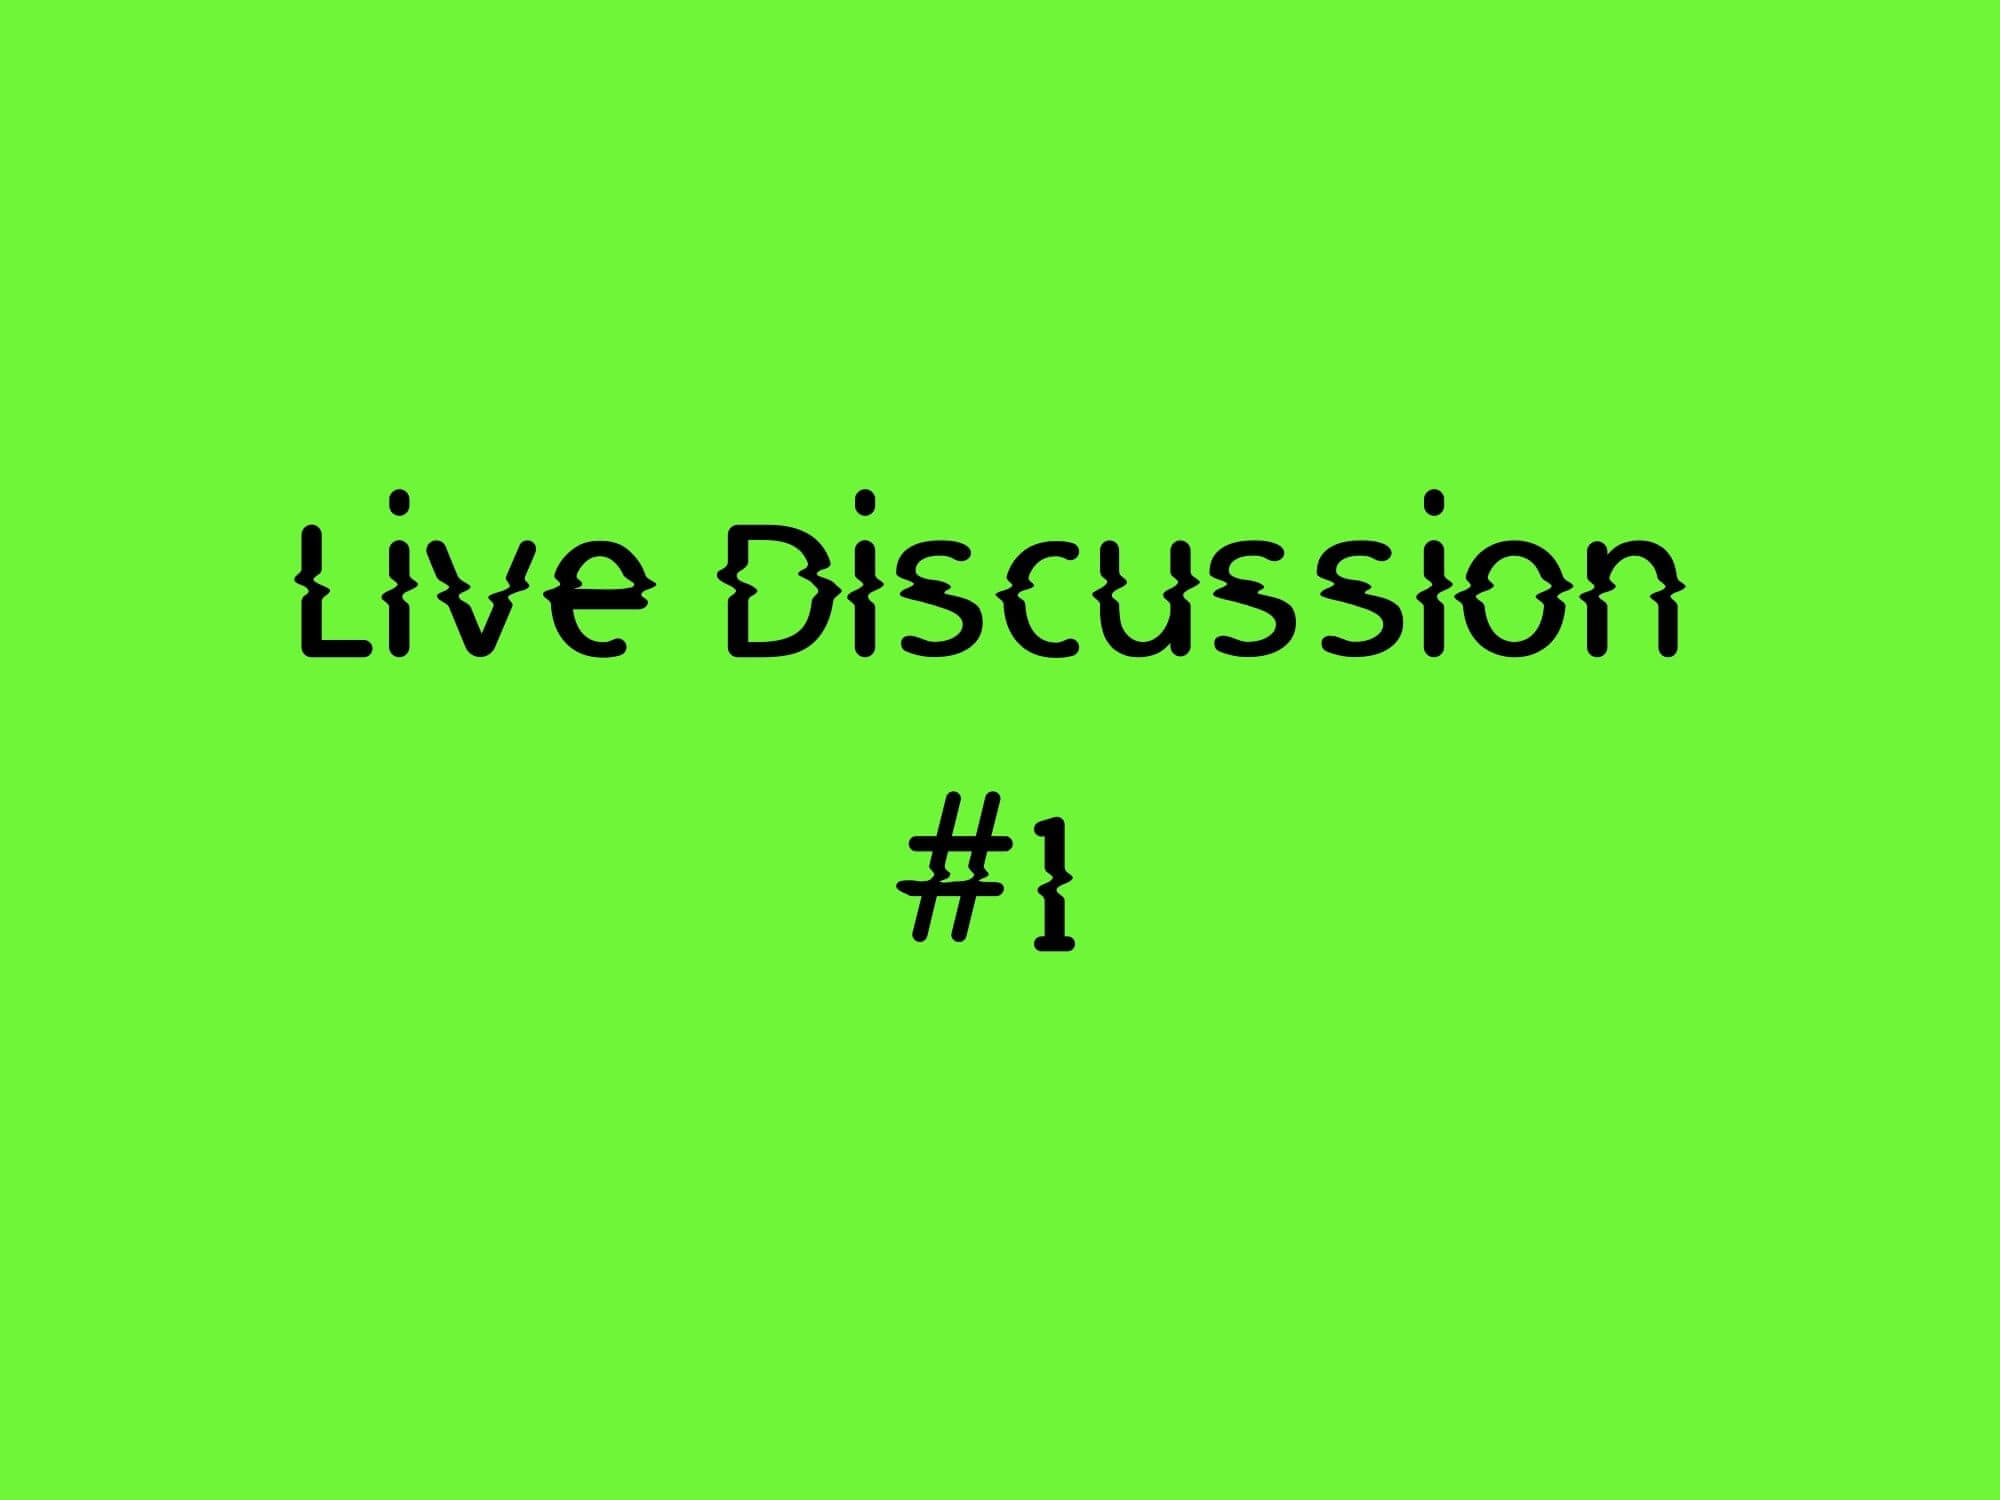 Live Discussion #1 - Always online?